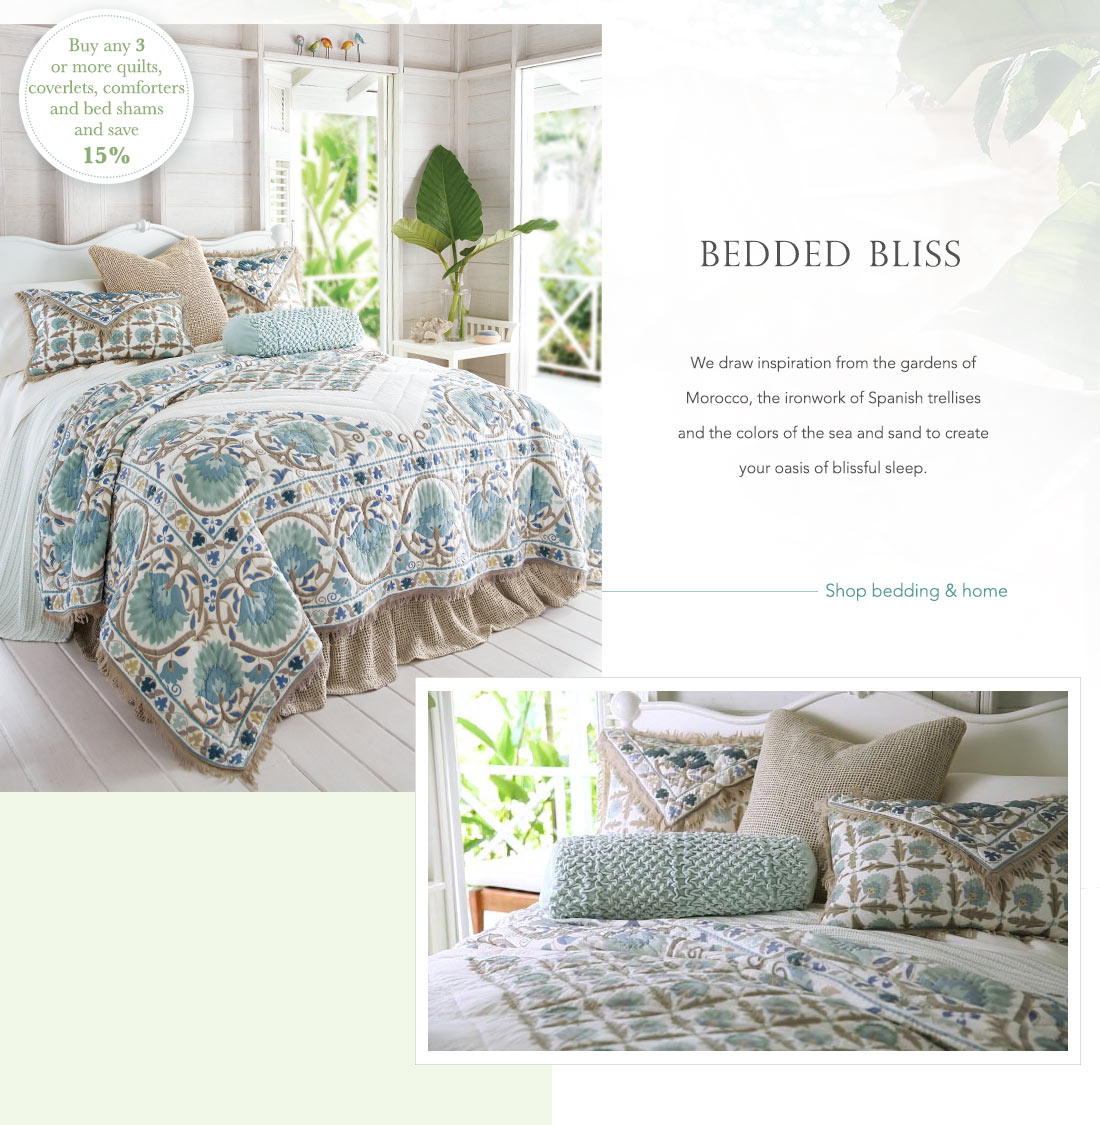 Bedded Bliss - shop bedding & home